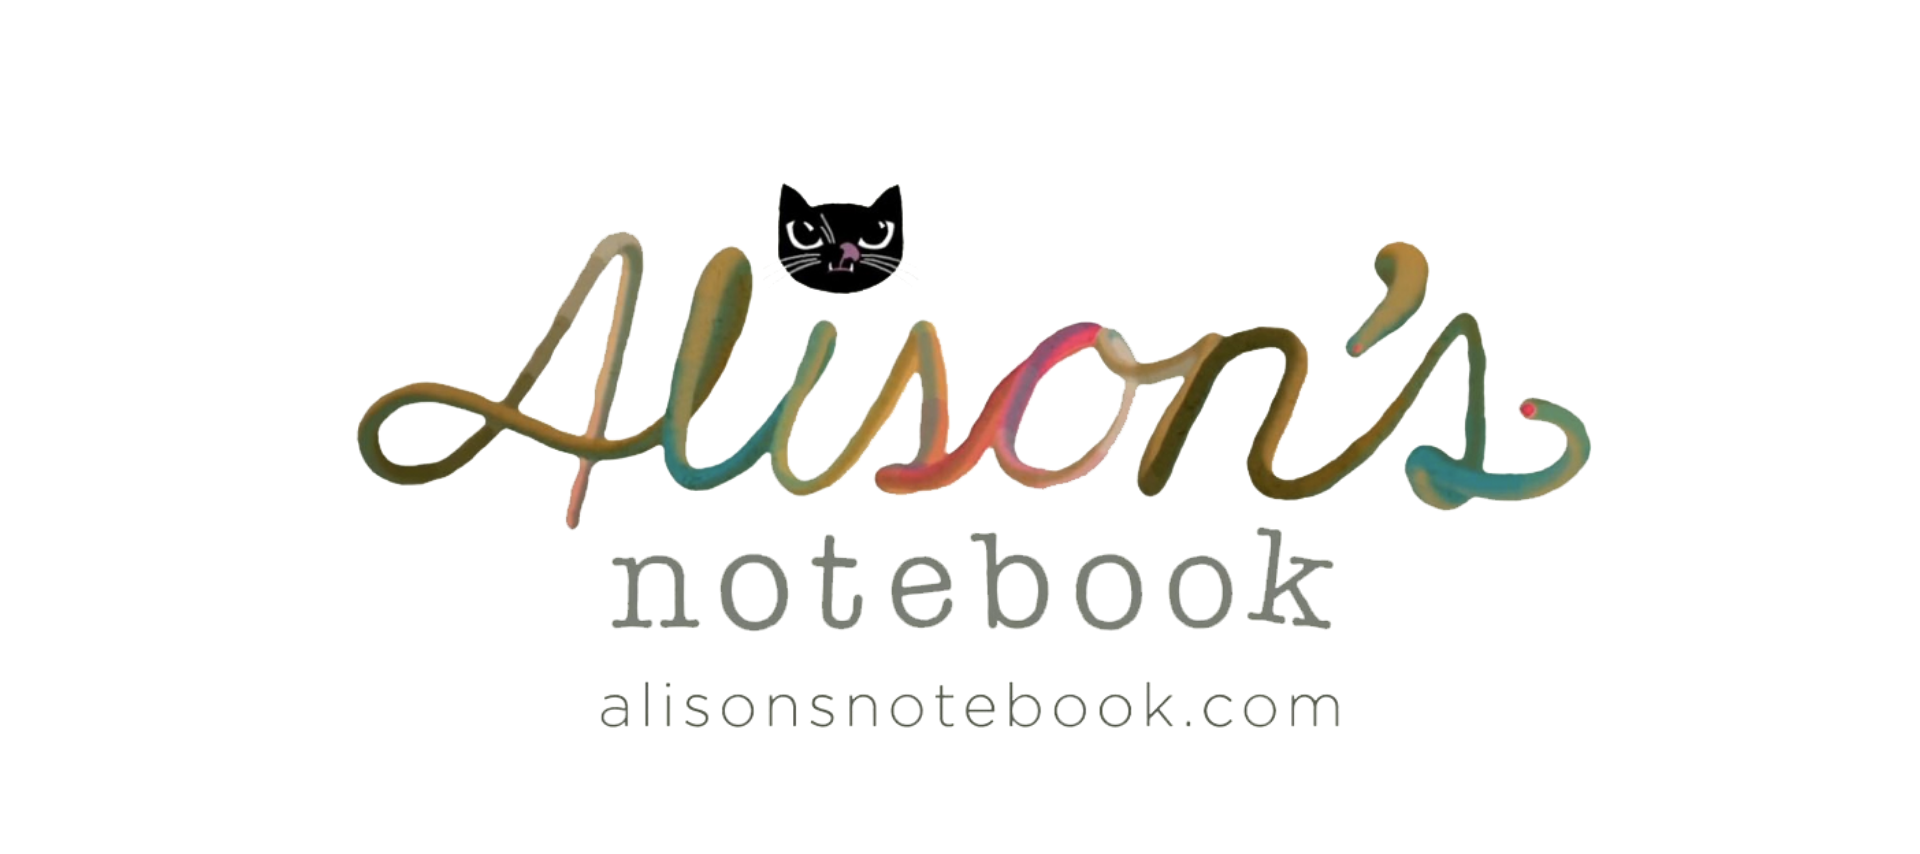 Alison's Notebook | The Awkward Art Of Self Improvement